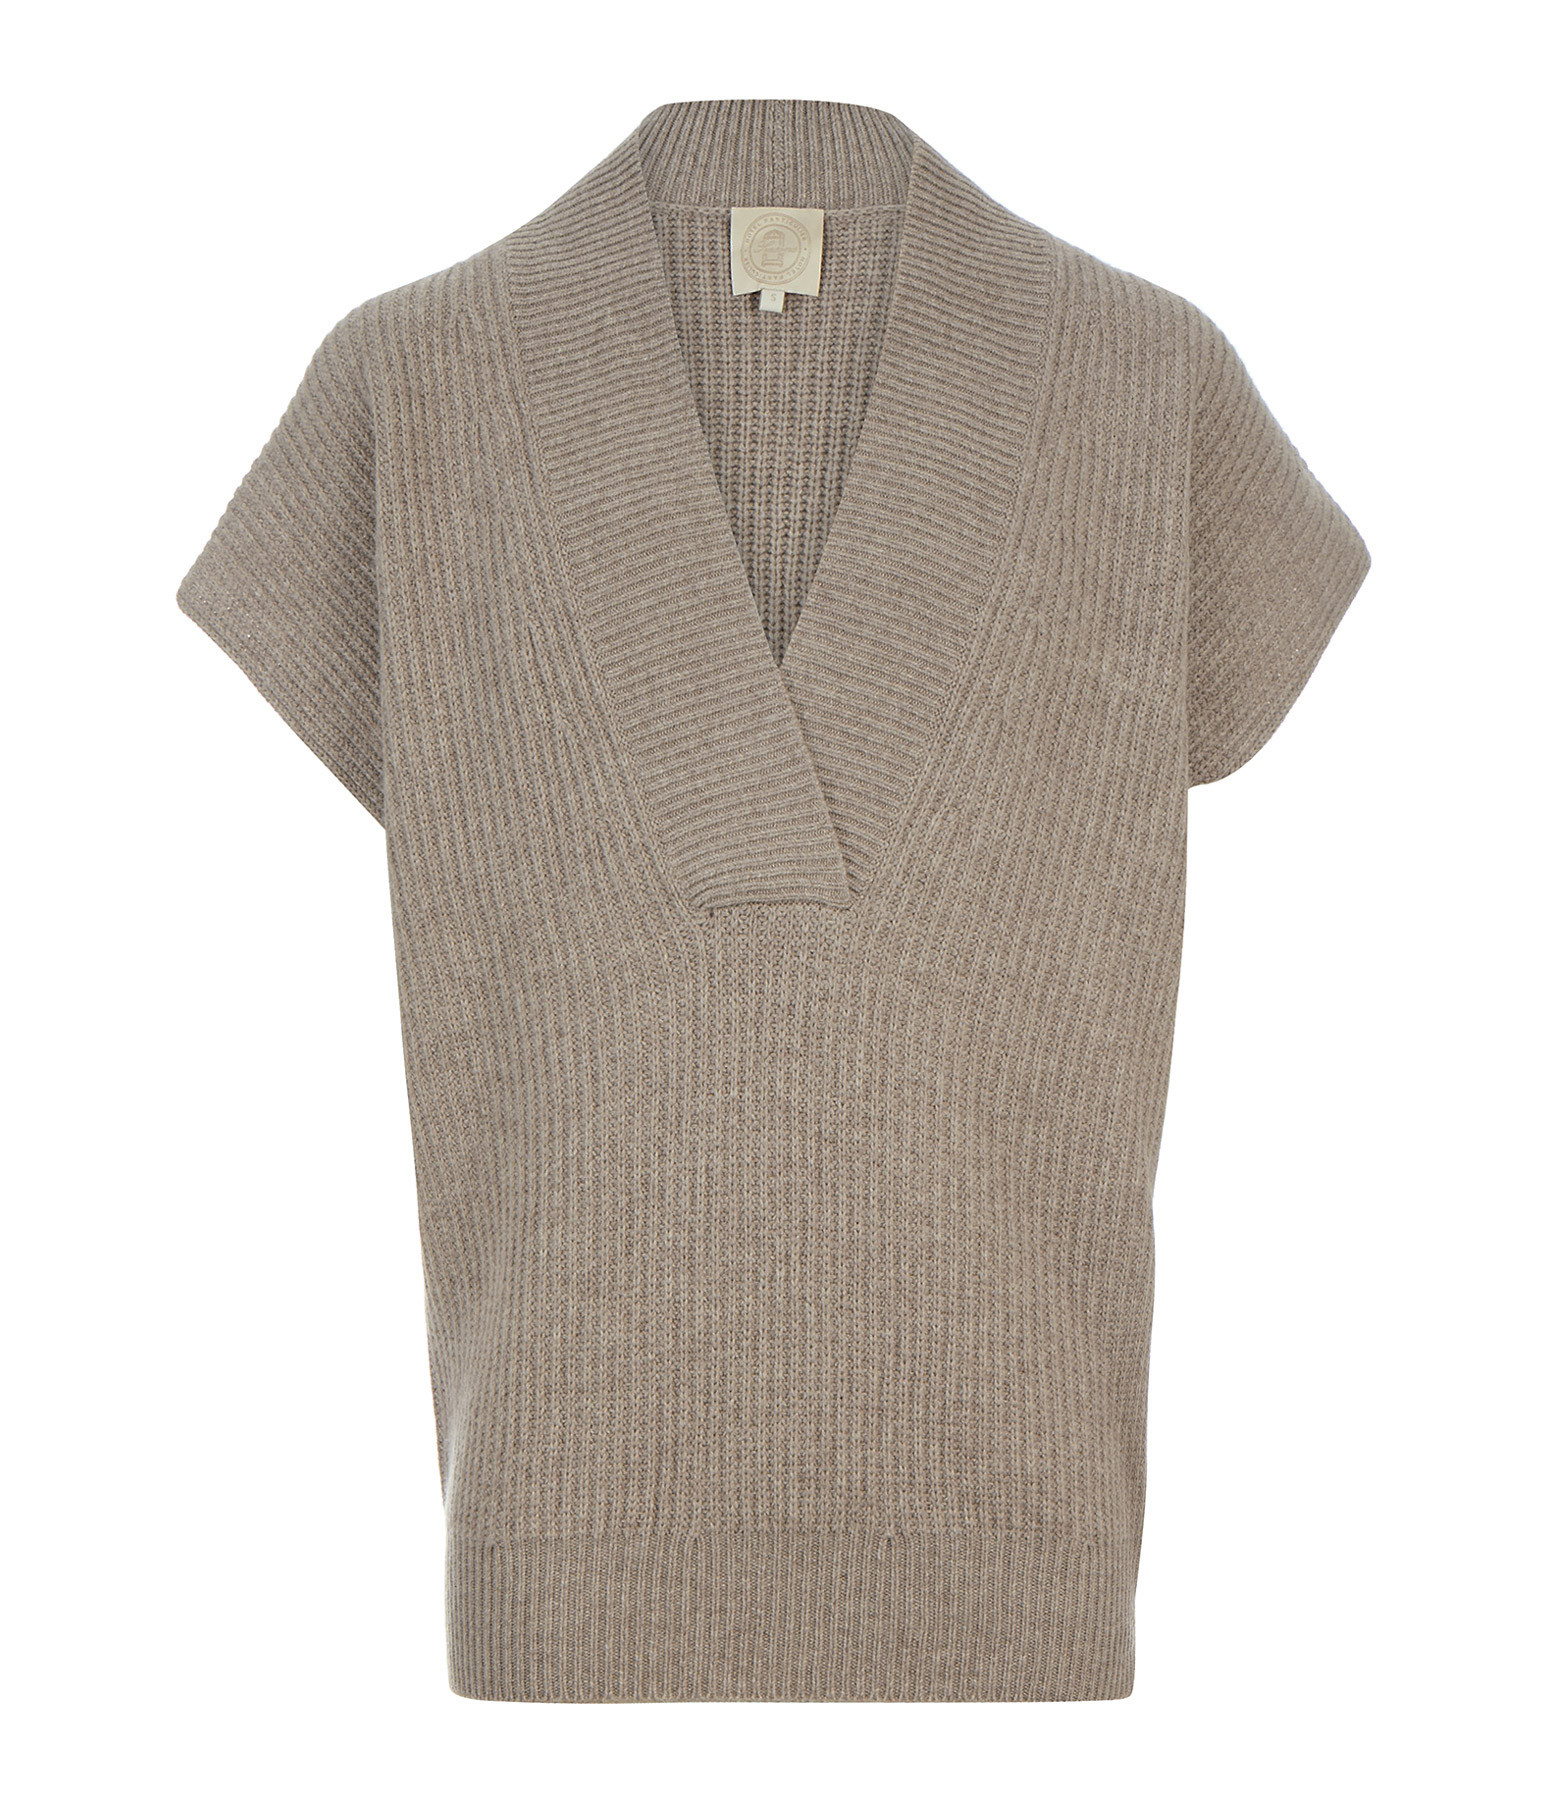 SEASONS - Pull Col V Manches Courtes Sable